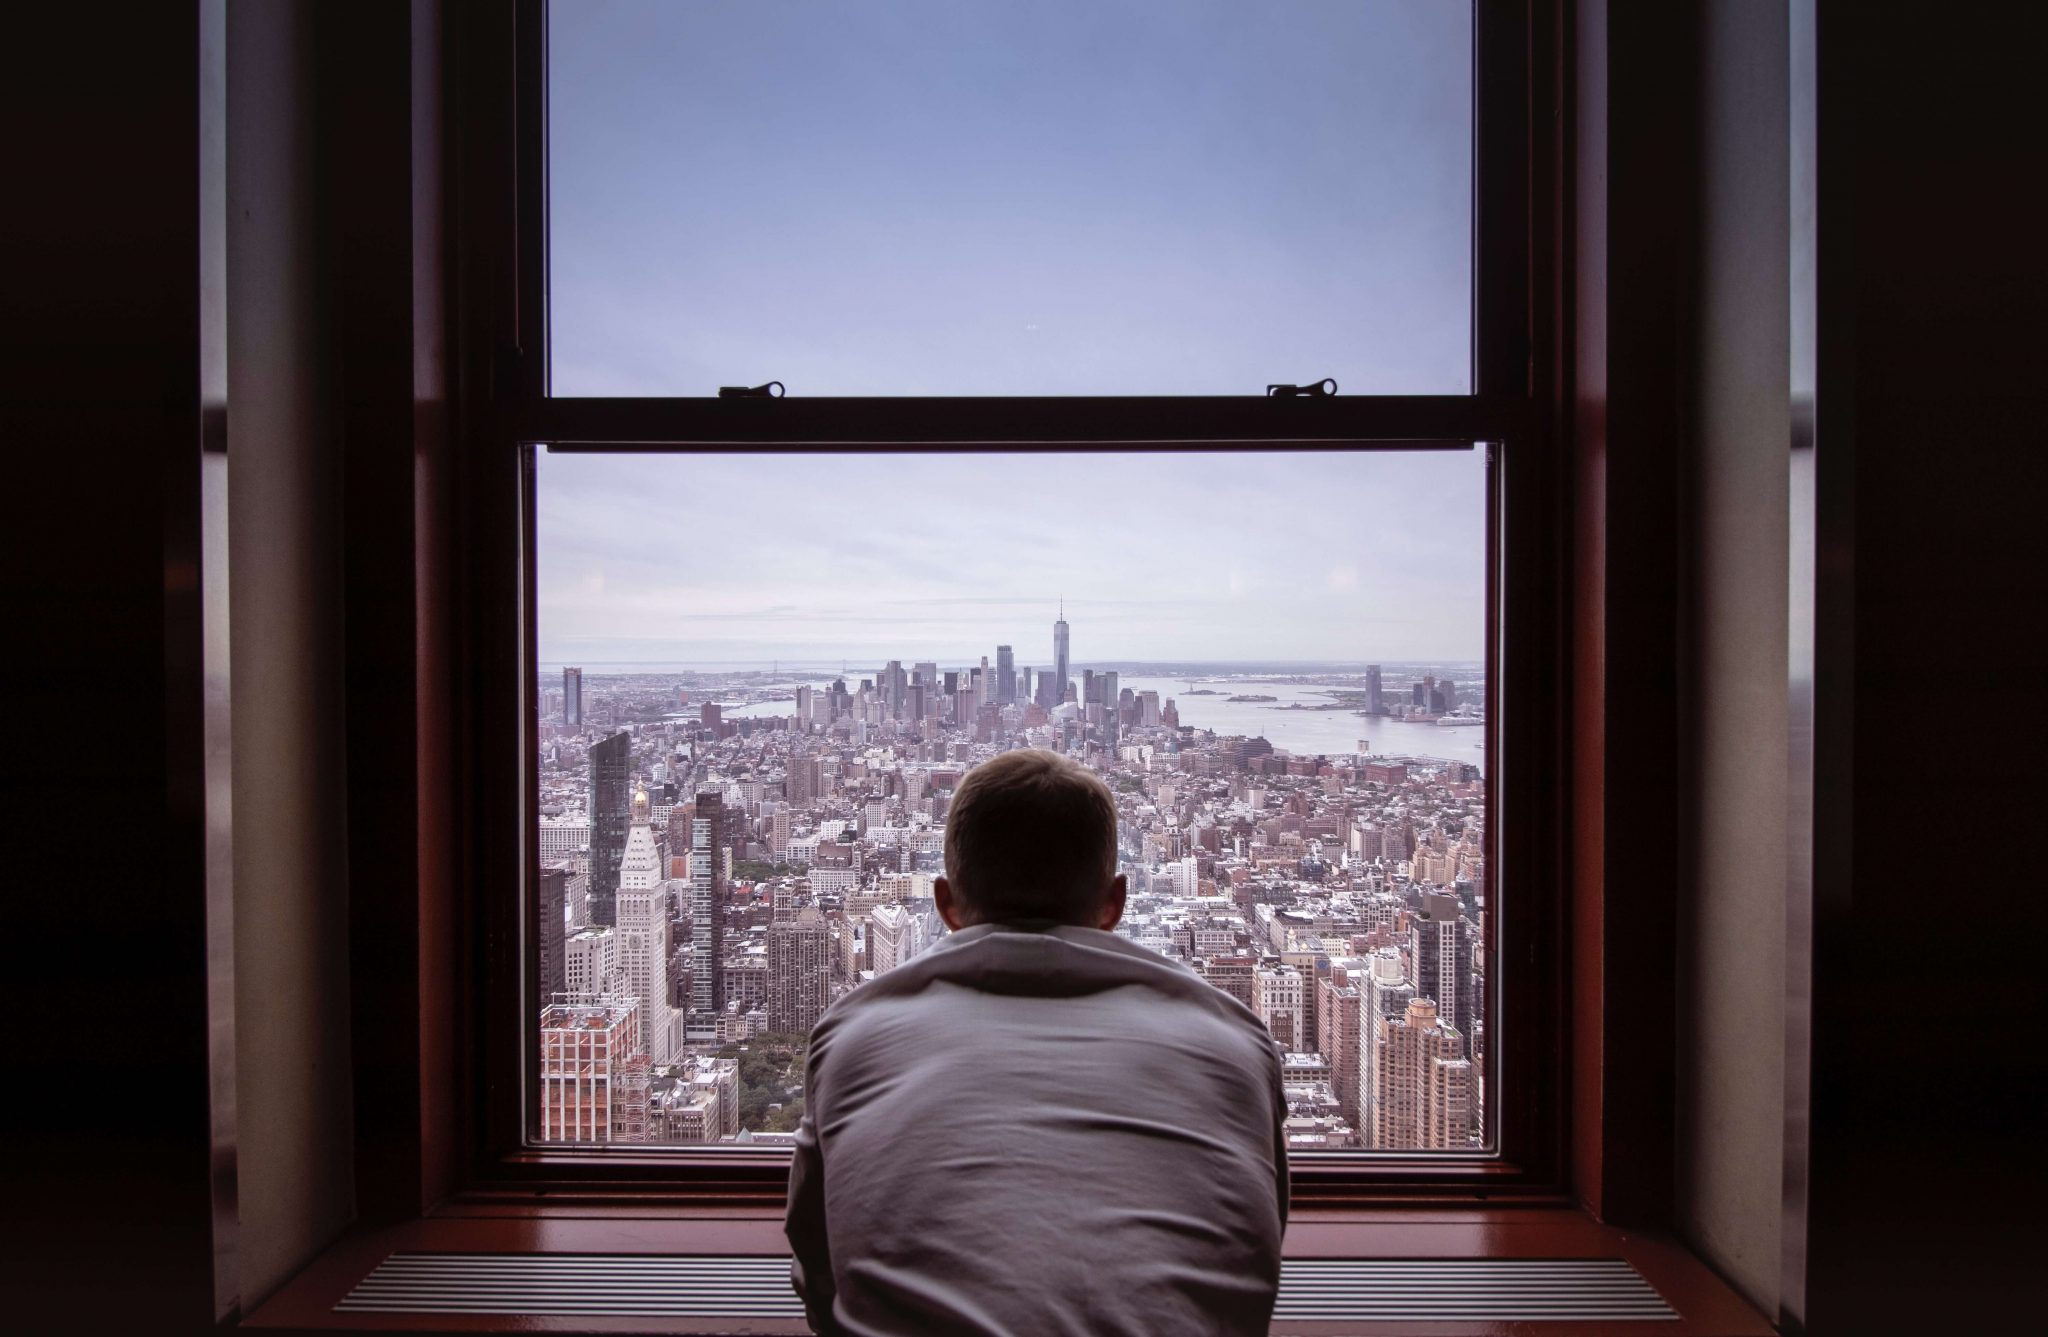 University of the People student reflecting from NYC window